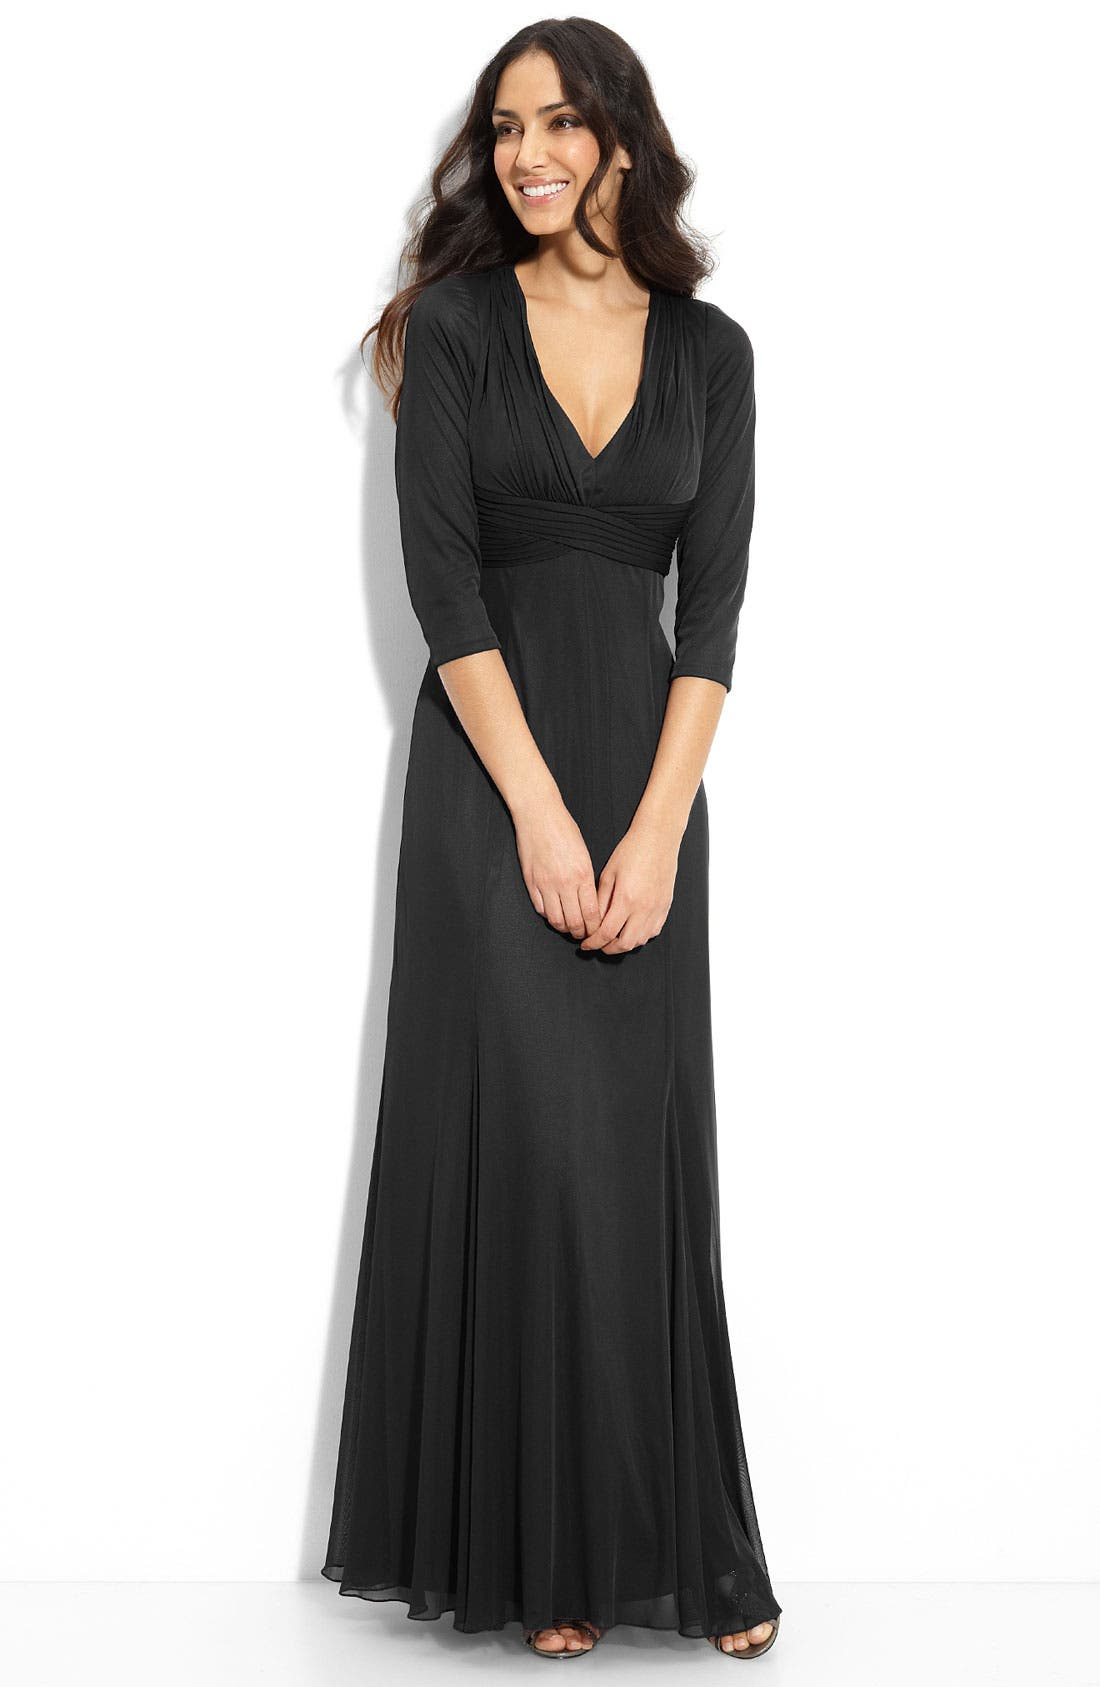 Main Image - Alex Evenings Crisscross Waist Mesh Gown (Petite)